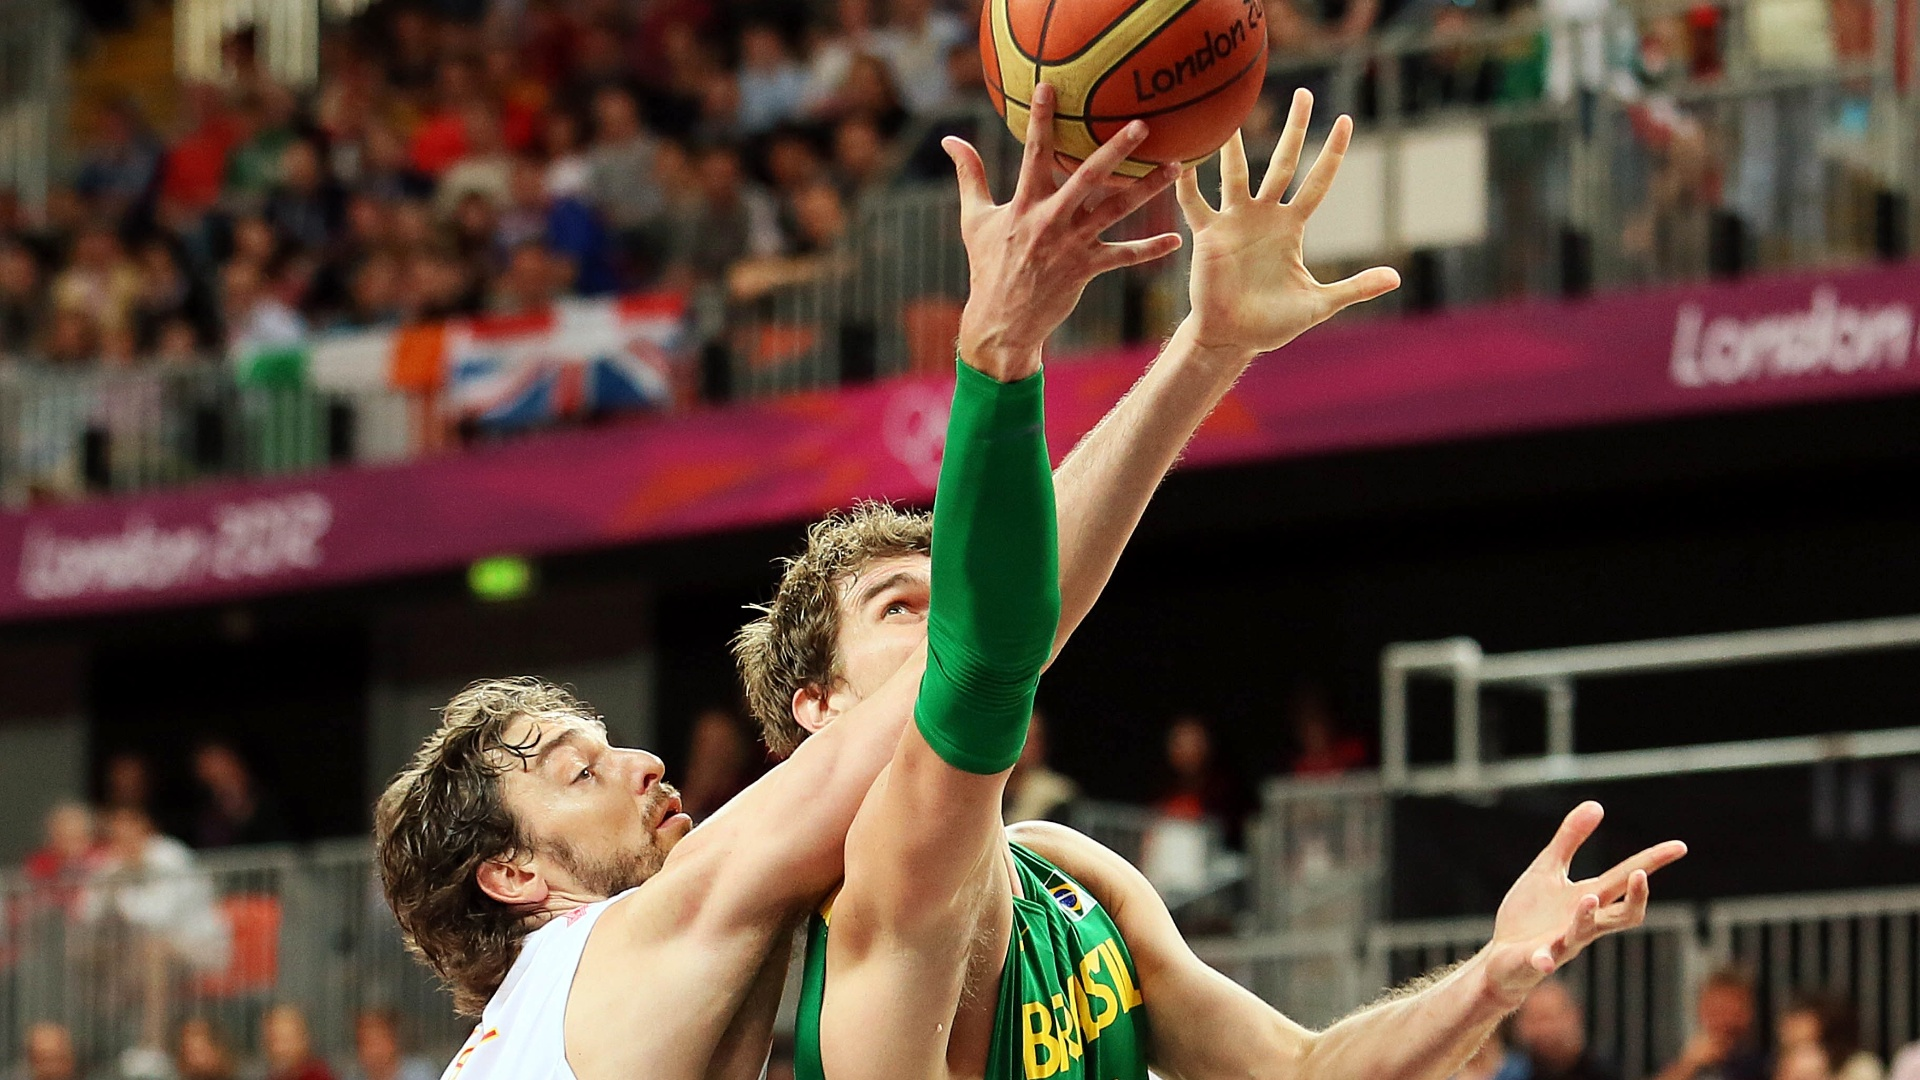 Tiago Splitter tenta converter cesta para o Brasil, marcado pelo espanhol Pau Gasol